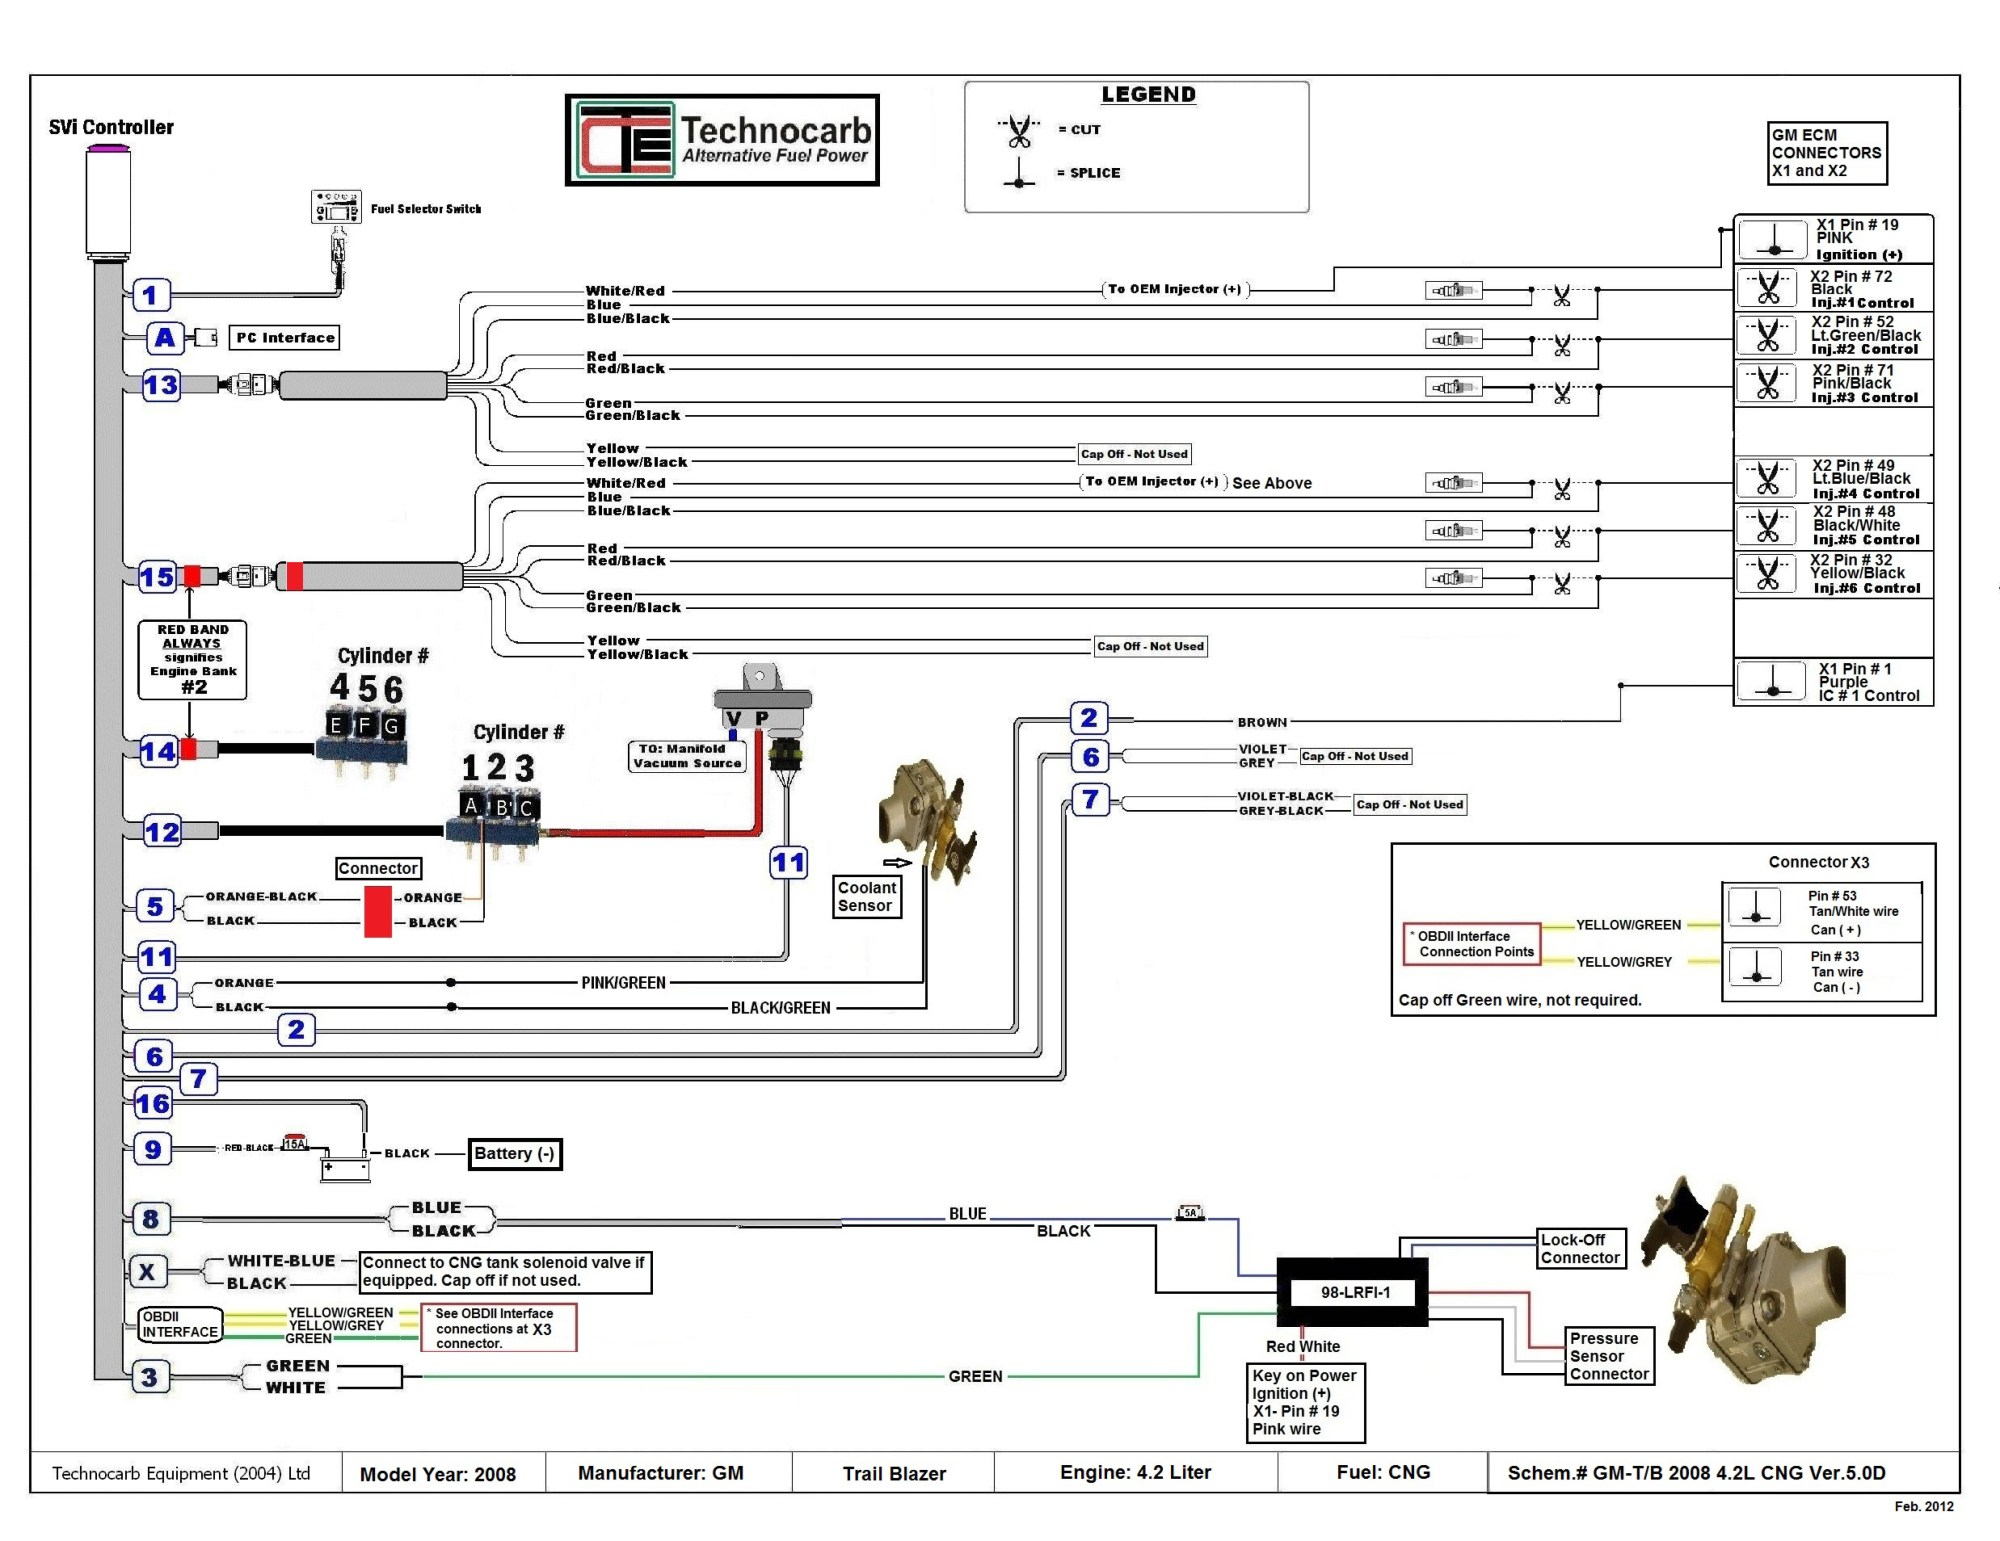 hight resolution of 2008 trailblazer wiring diagram wiring diagram note 2007 trailblazer wiring schematic 2008 trailblazer wireing diagram wiring